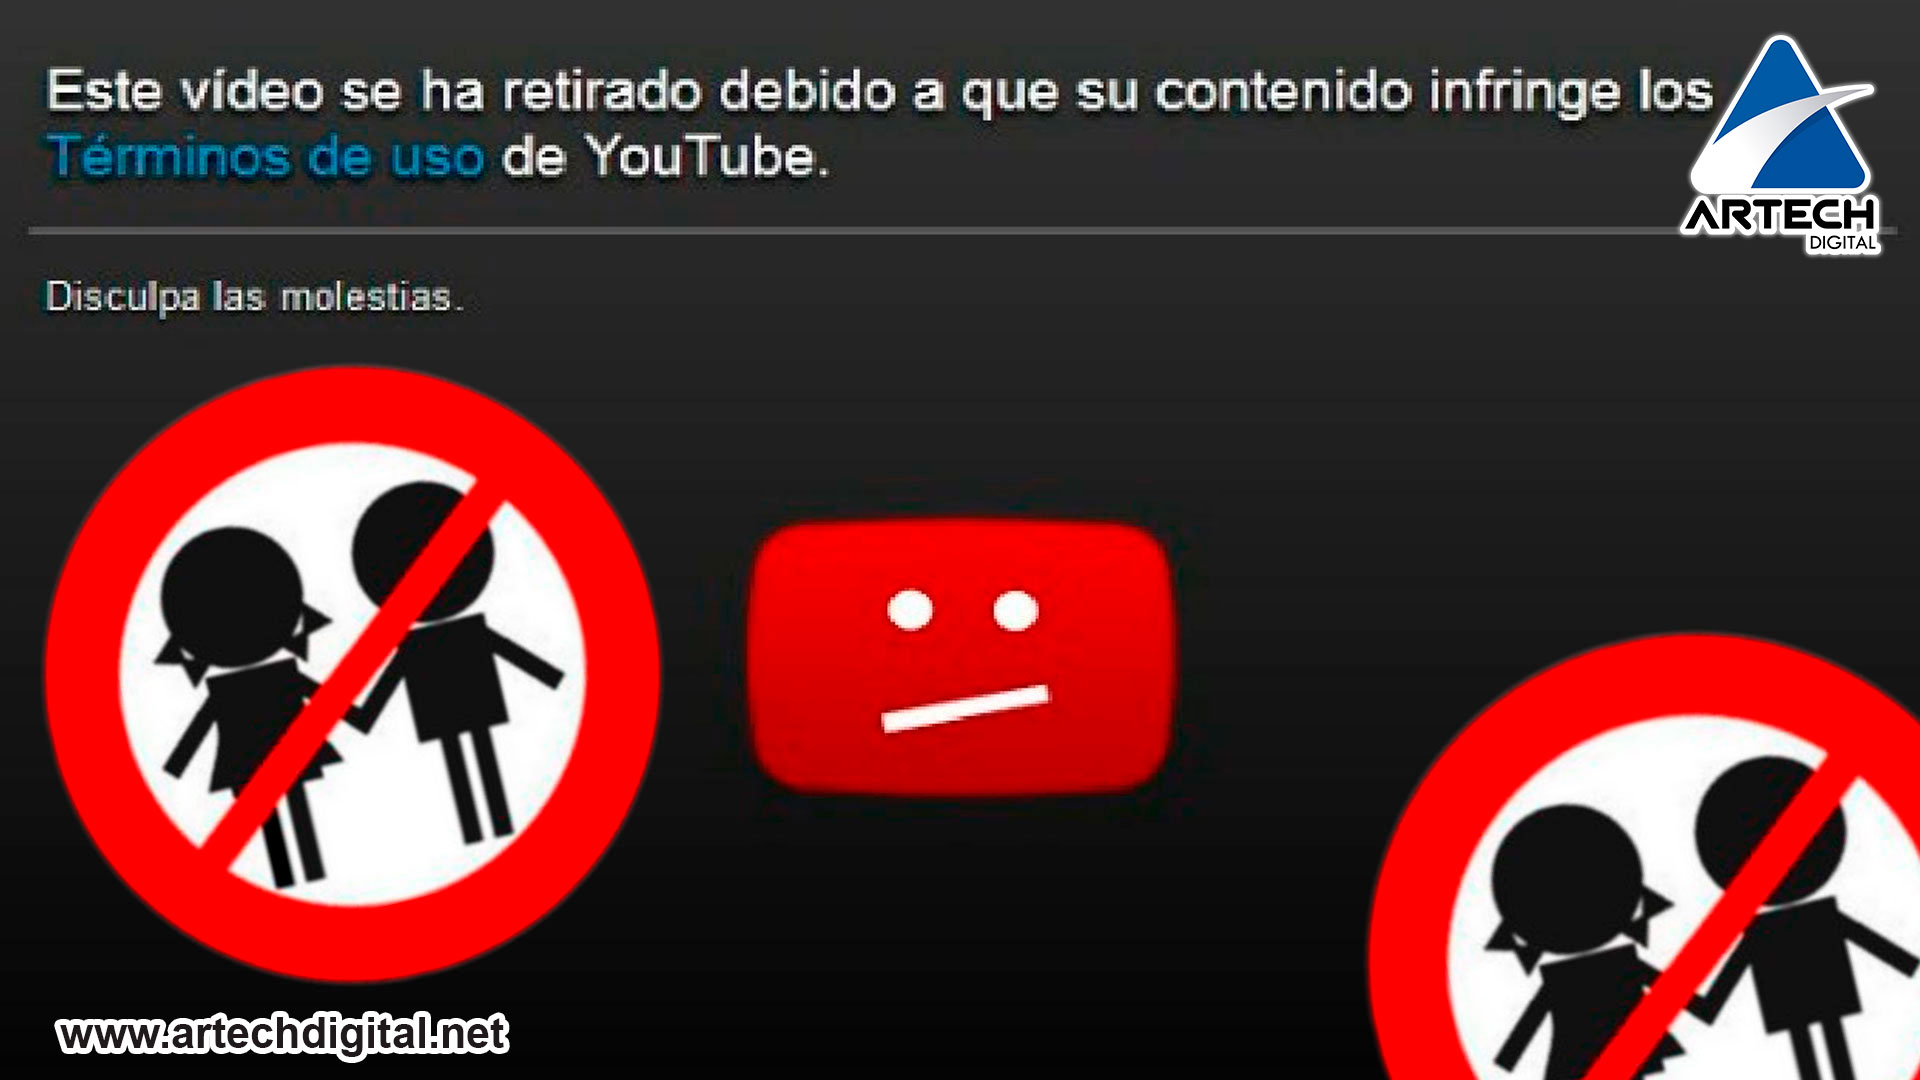 Threats on YouTube - artech digital